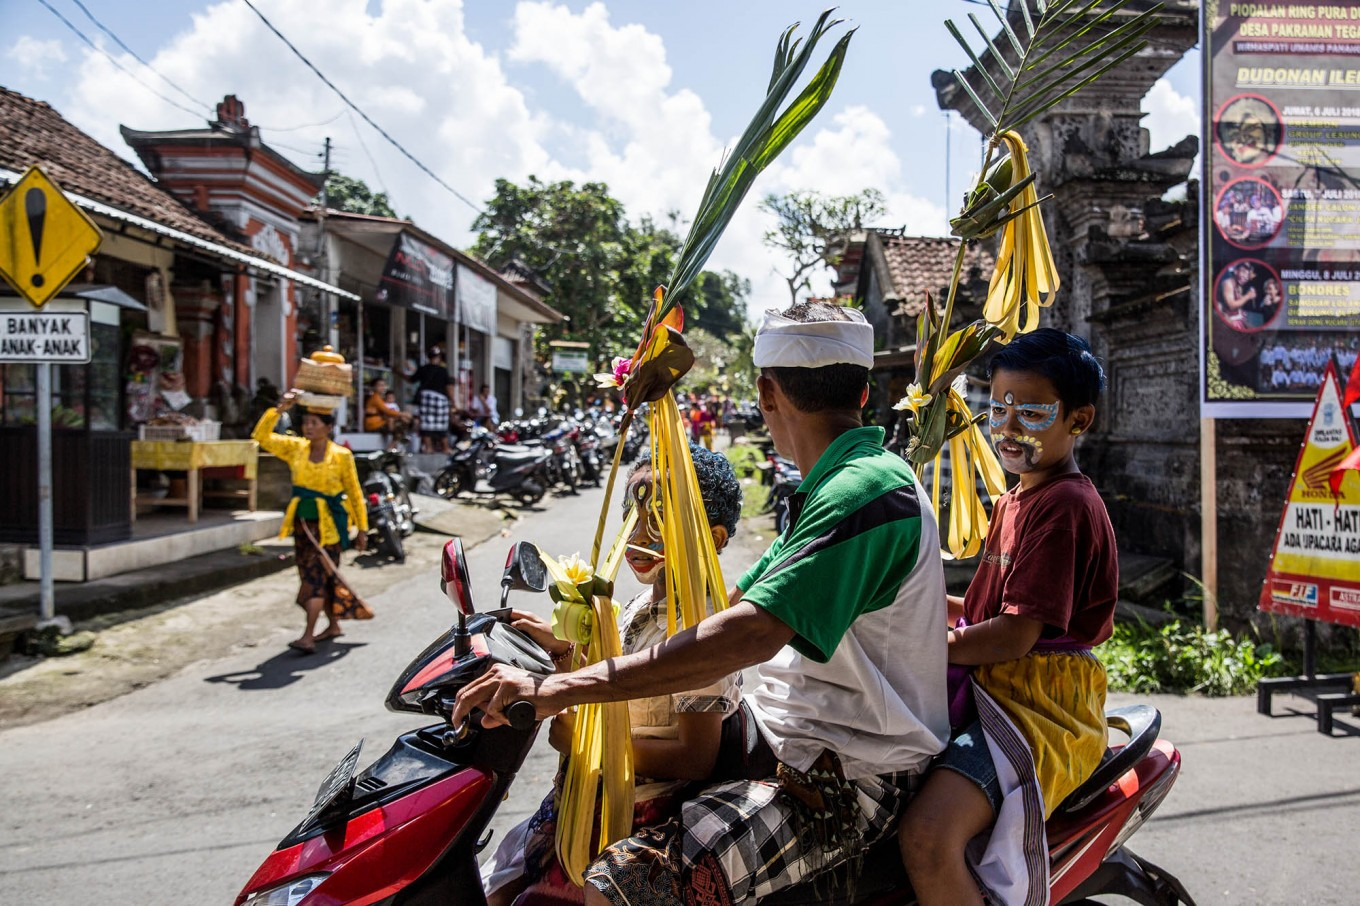 A Balinese man rides a motorcycle with his children to join the Ngerebeg ritual. JP/Agung Parameswara